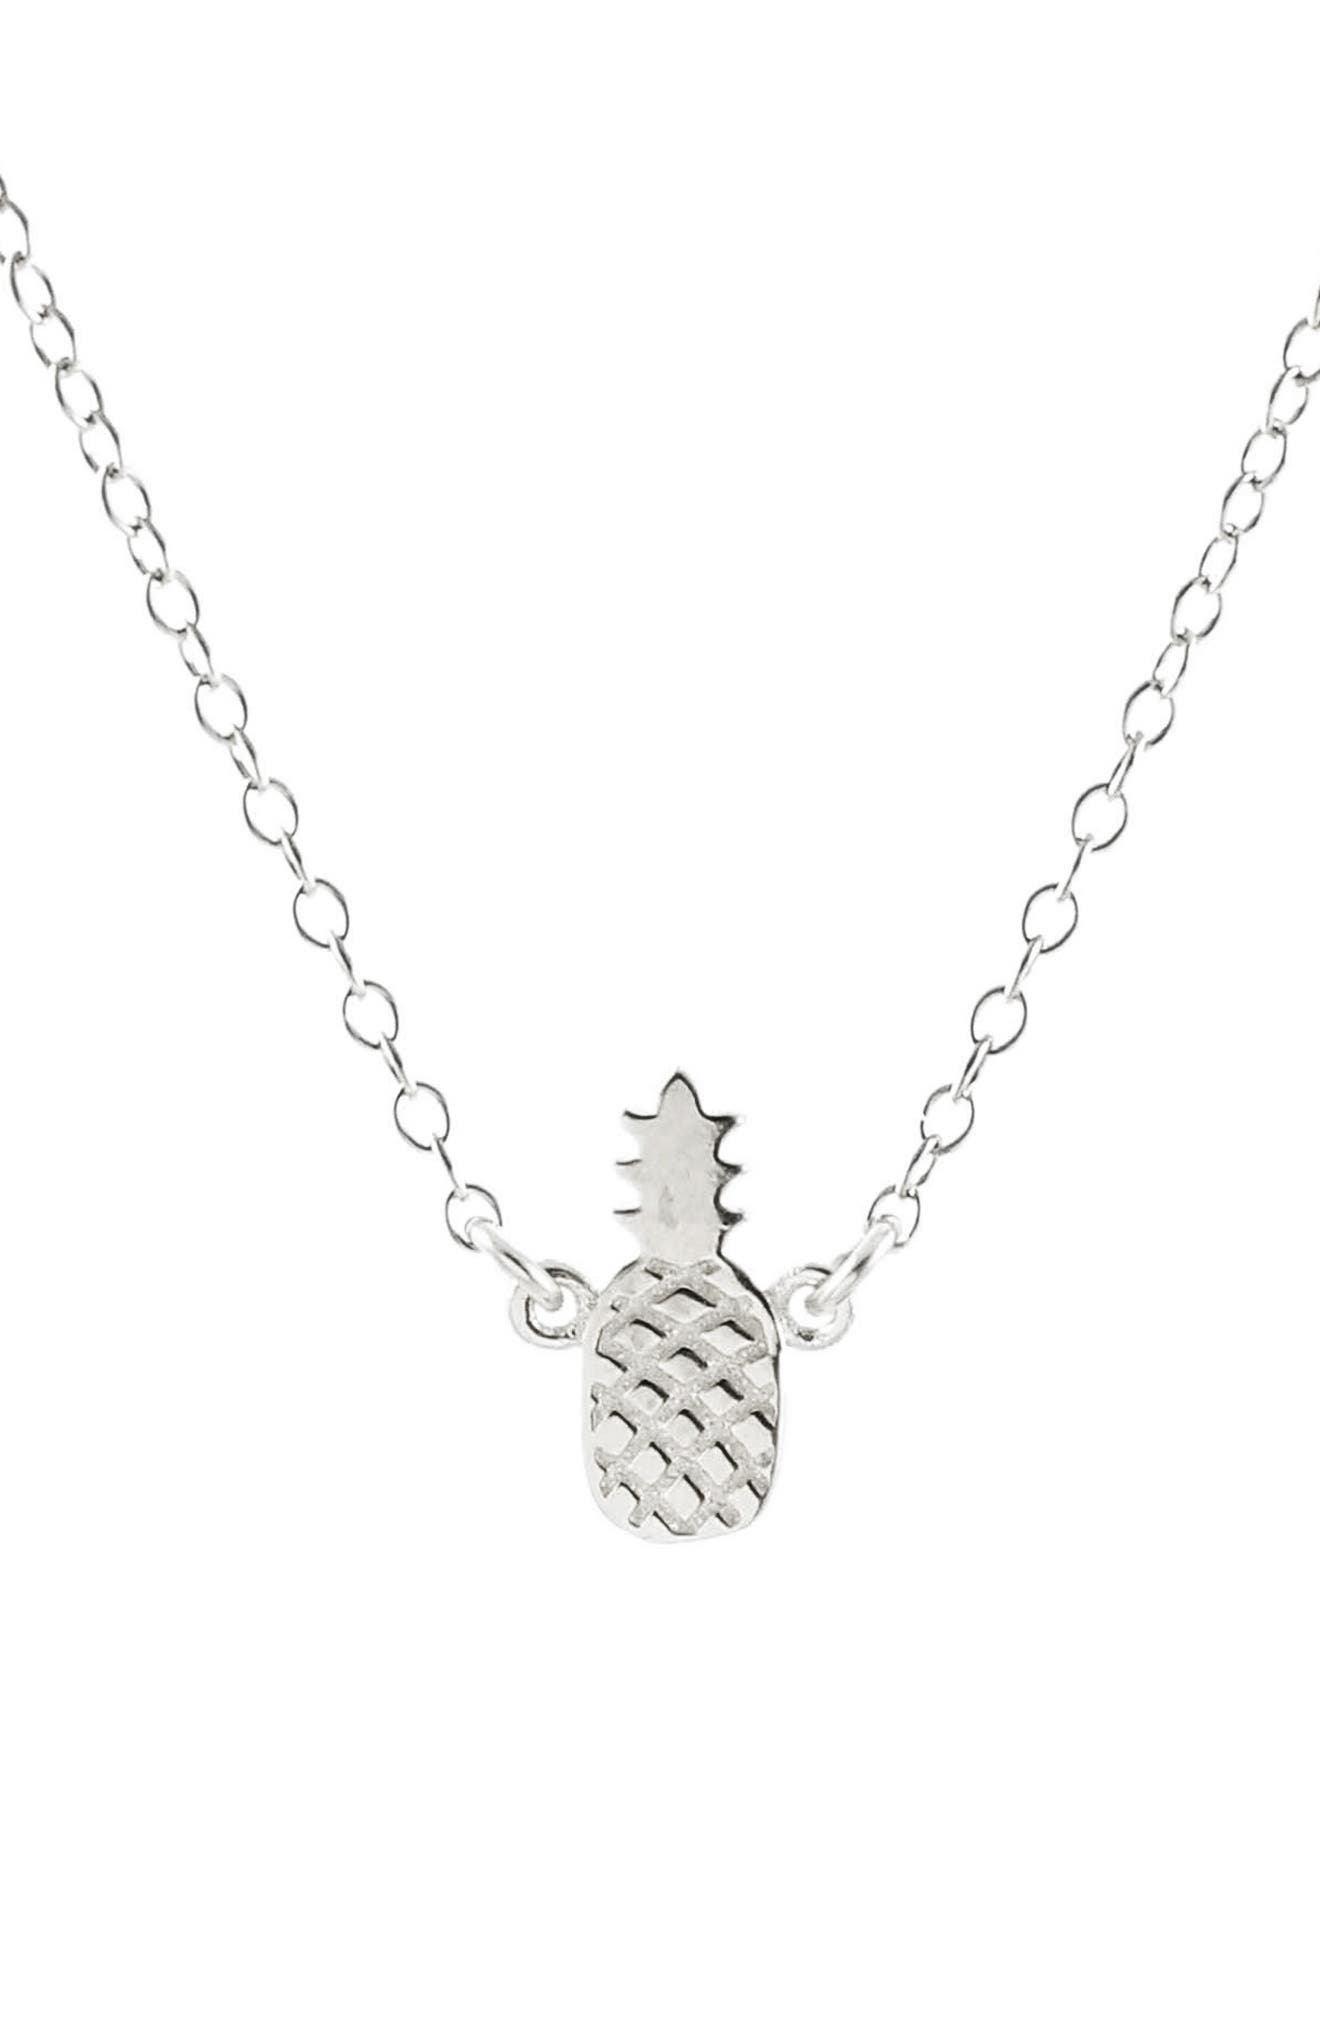 Main Image - Kris Nations Pineapple Charm Necklace